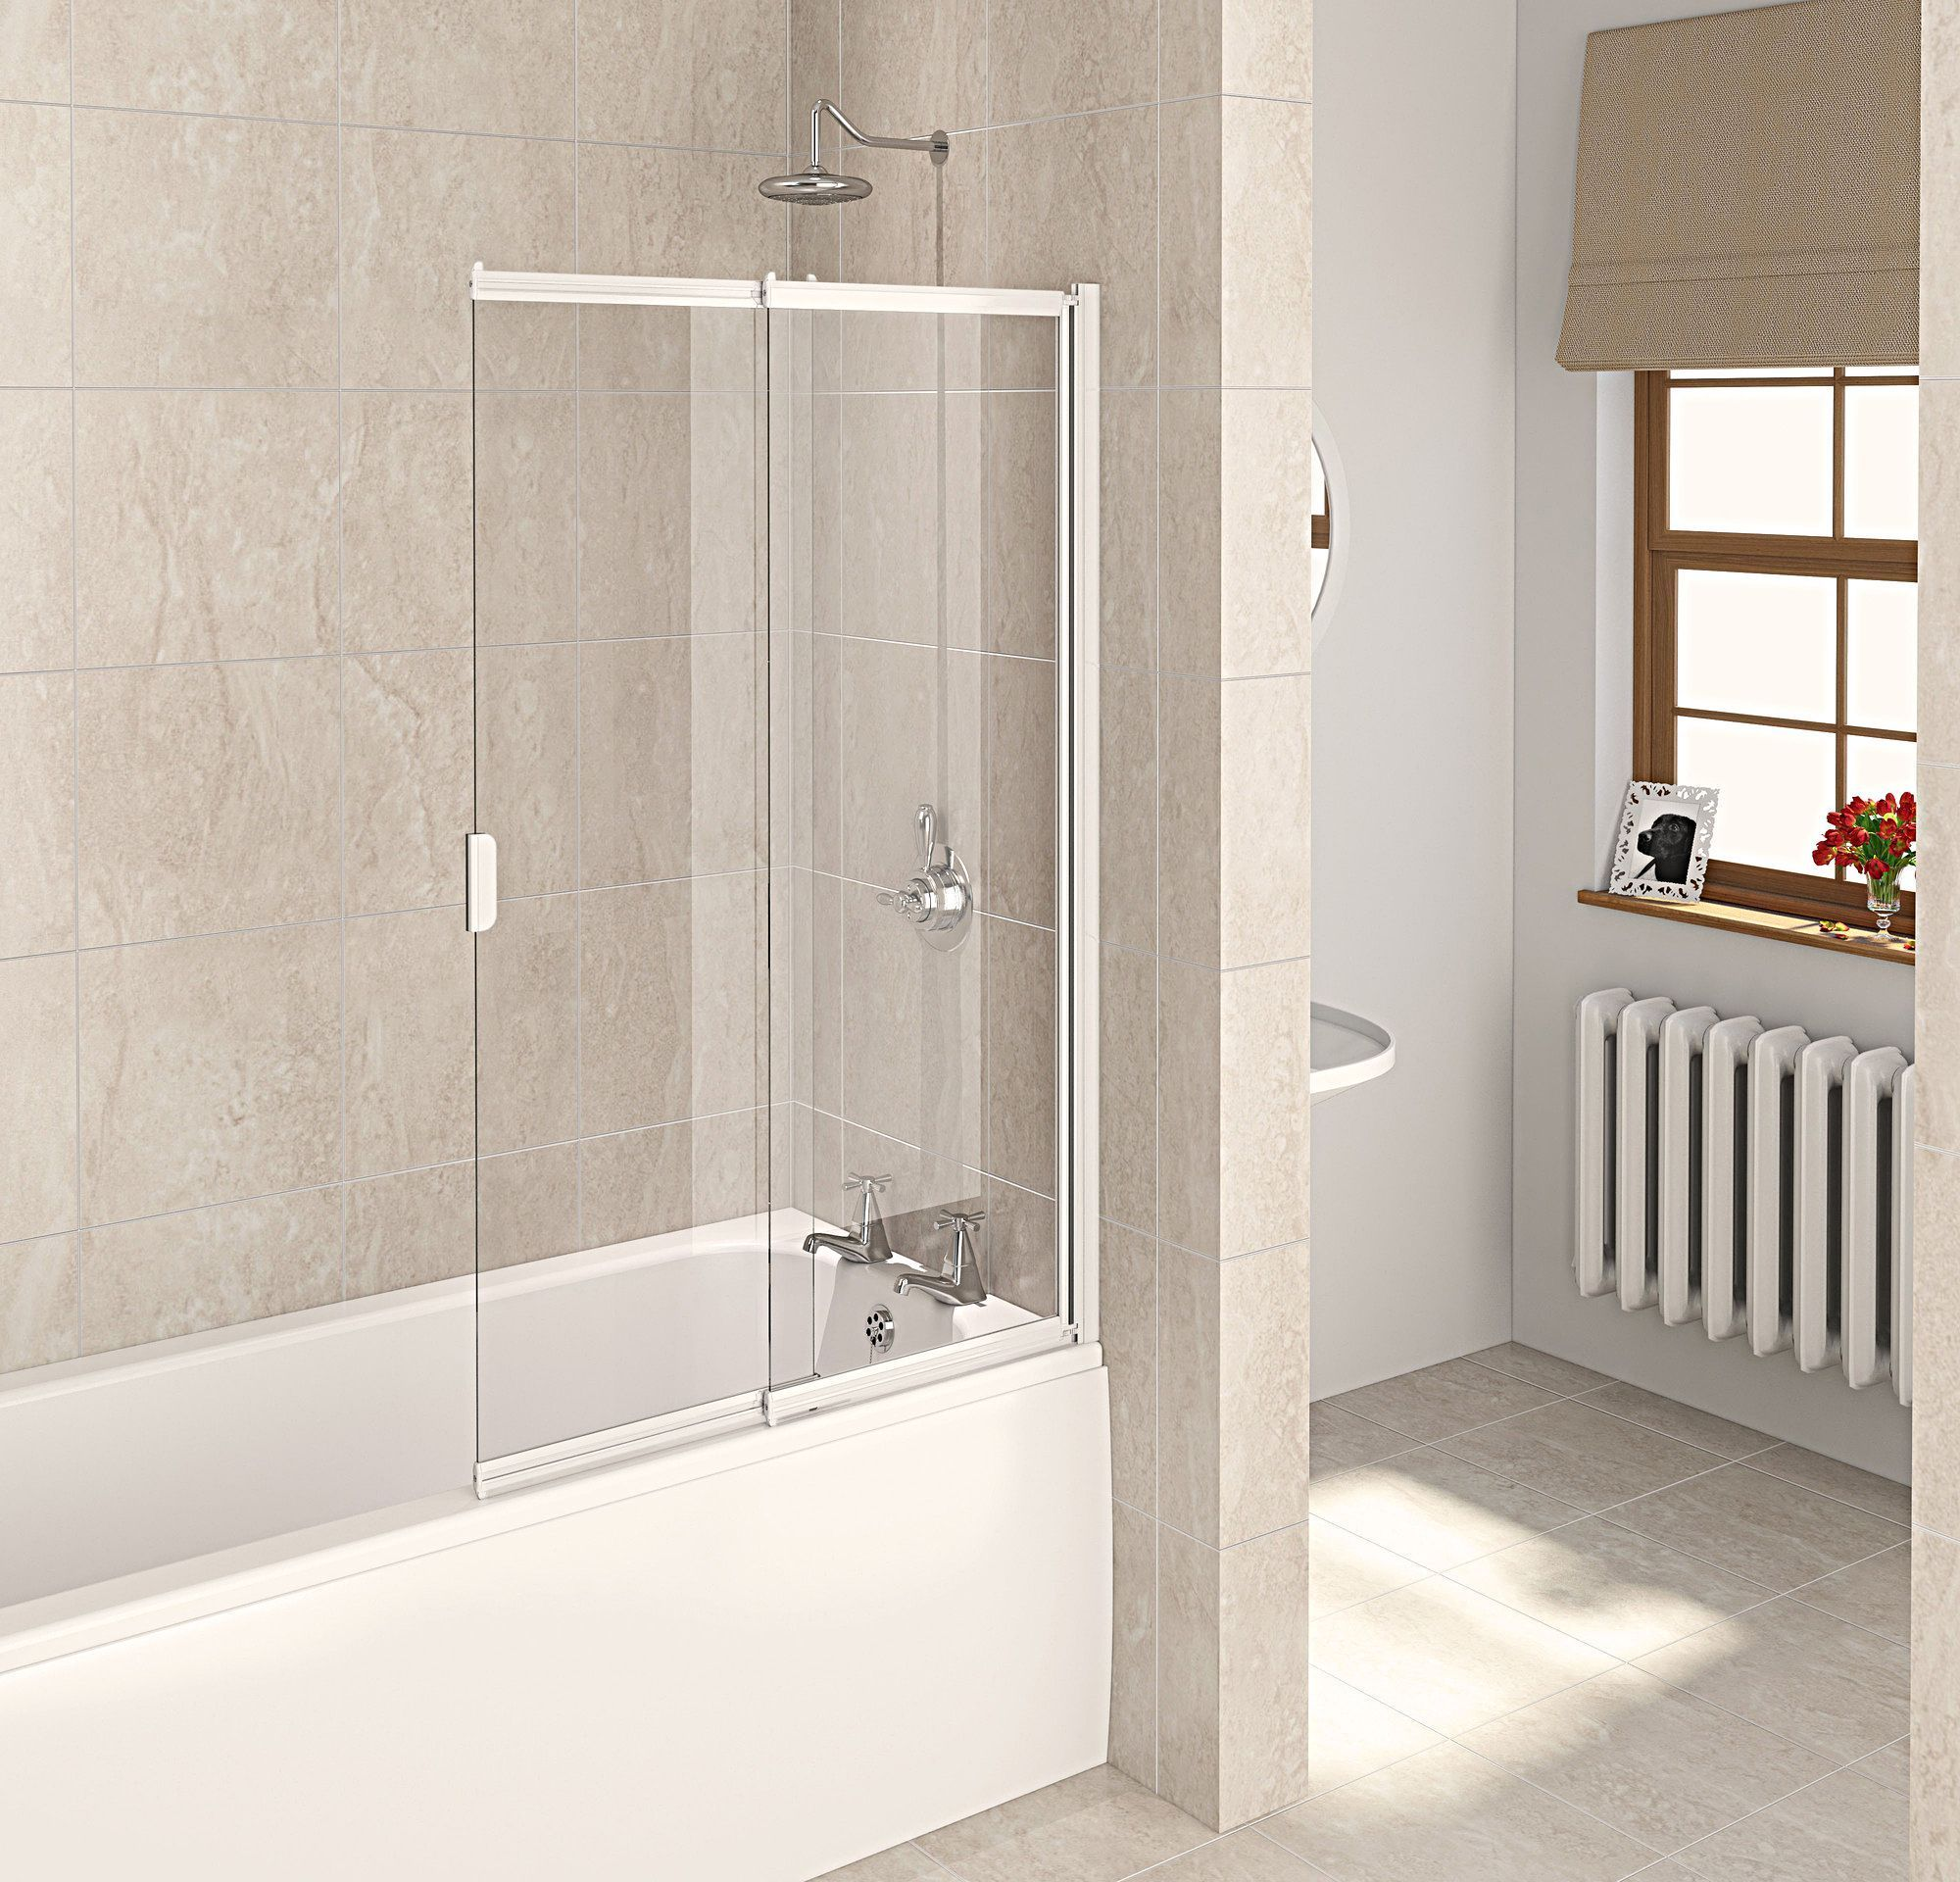 aqualux-white-aqua-4-clear-glass-2-panel-sliding-bath ...